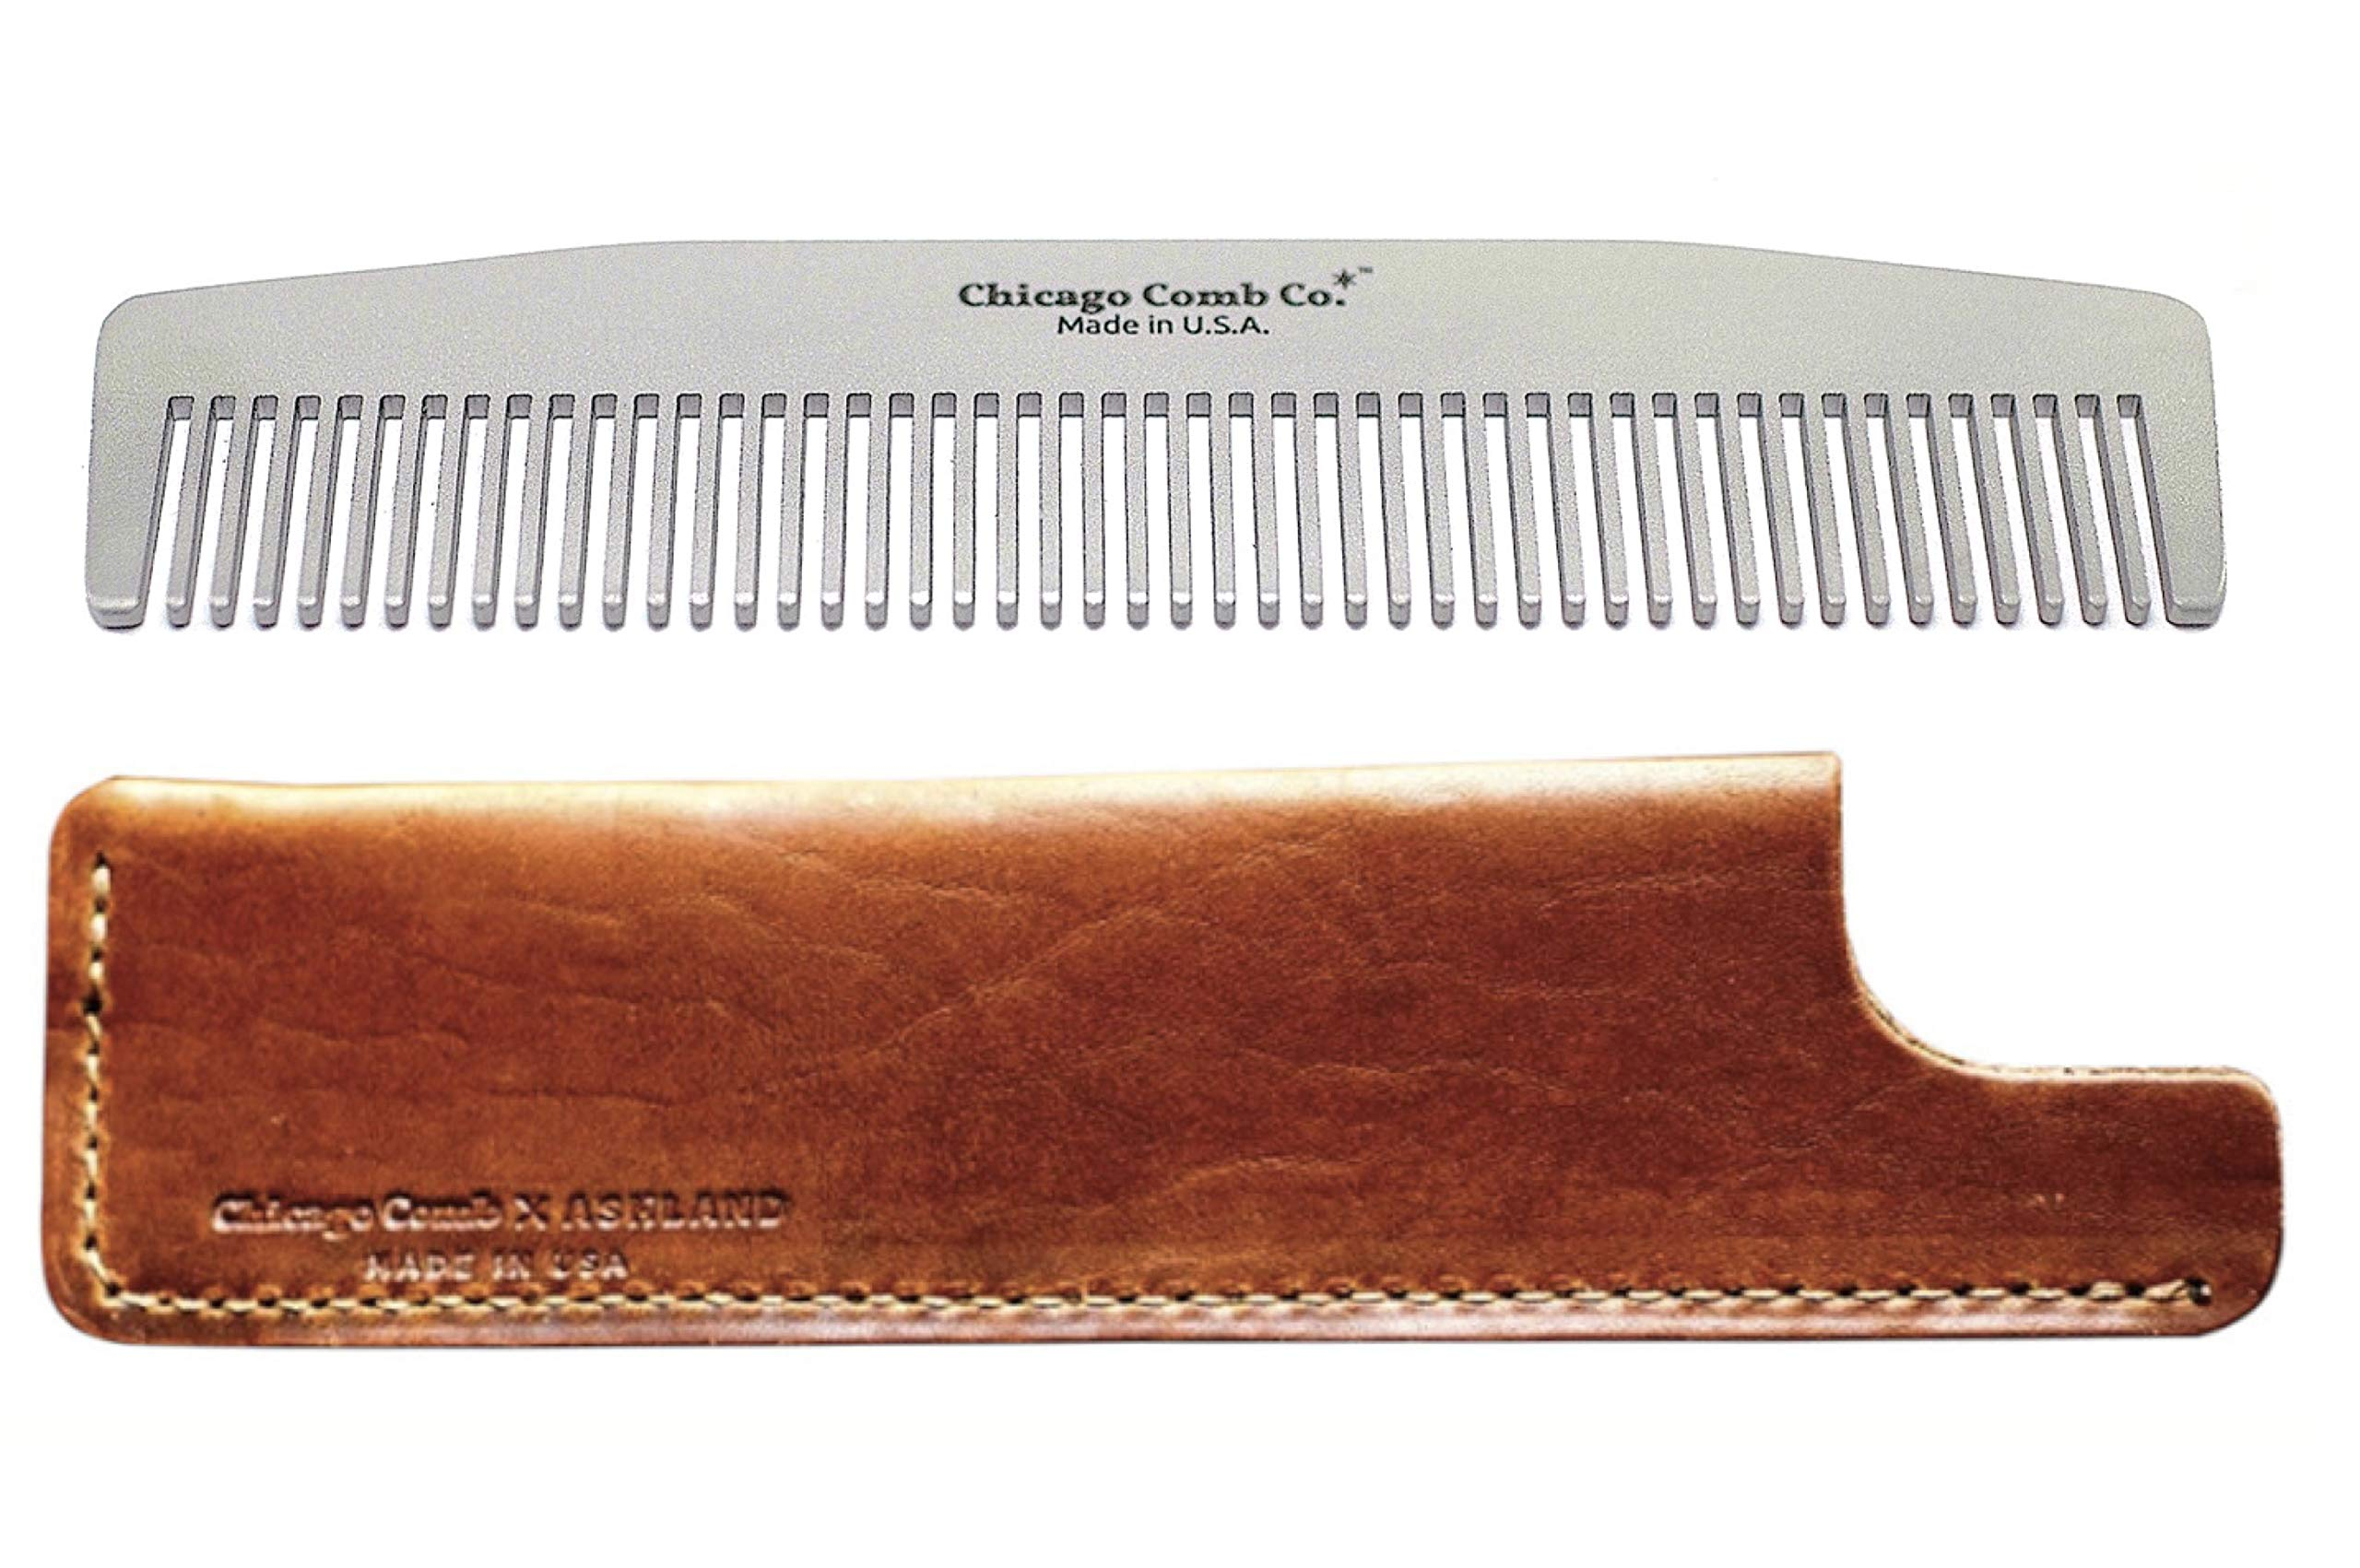 Chicago Comb Model 3 Stainless Steel + Horween Tan Leather Sheath, Made in USA, Ultra-Smooth, Durable, Anti-Static, 5.5 in. (14 cm), Medium-Fine Tines, Ultimate Daily Use Comb, Pocket Comb, Gift Set